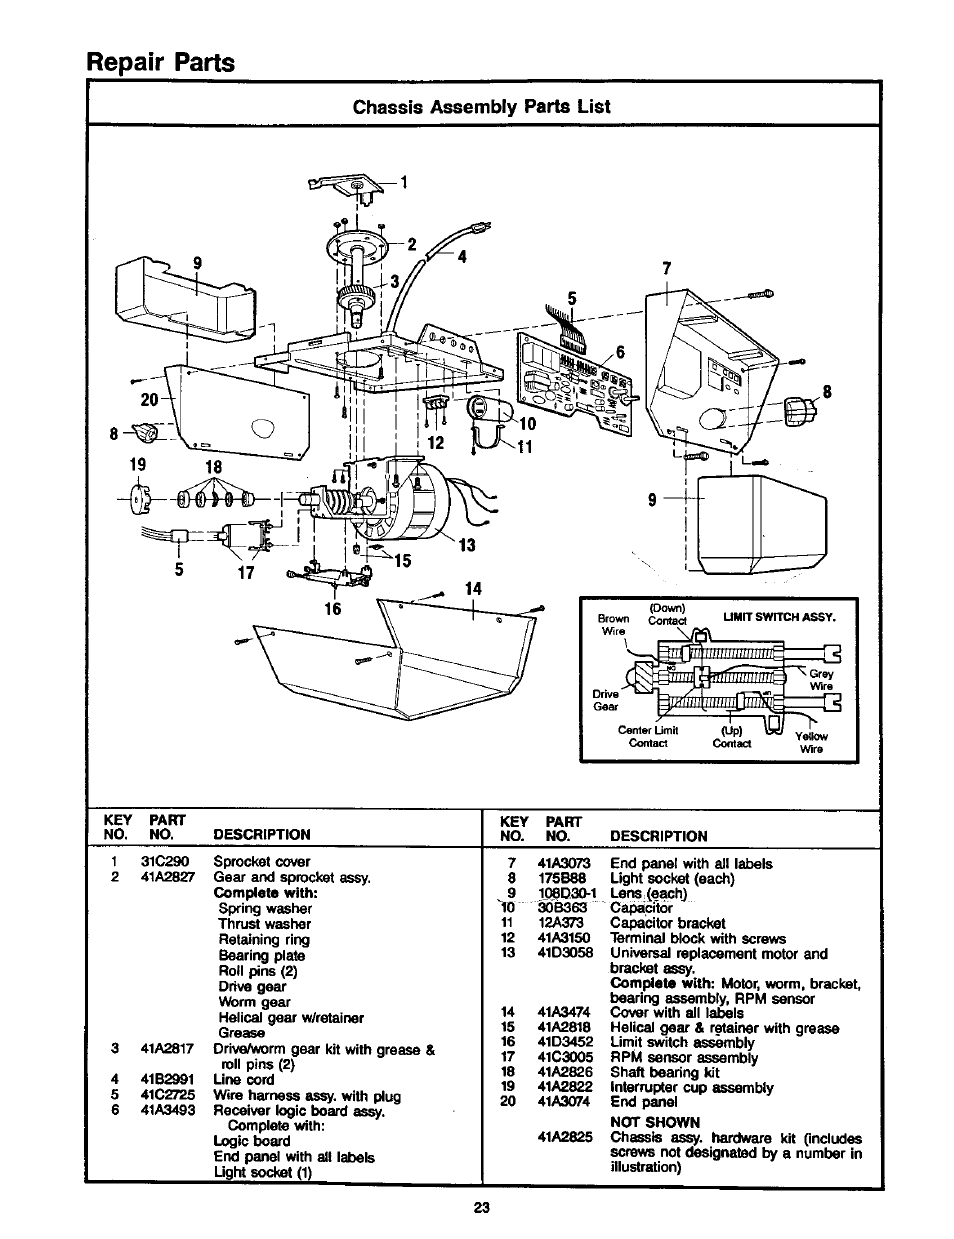 Chassis Assembly Parts List  Repair Parts